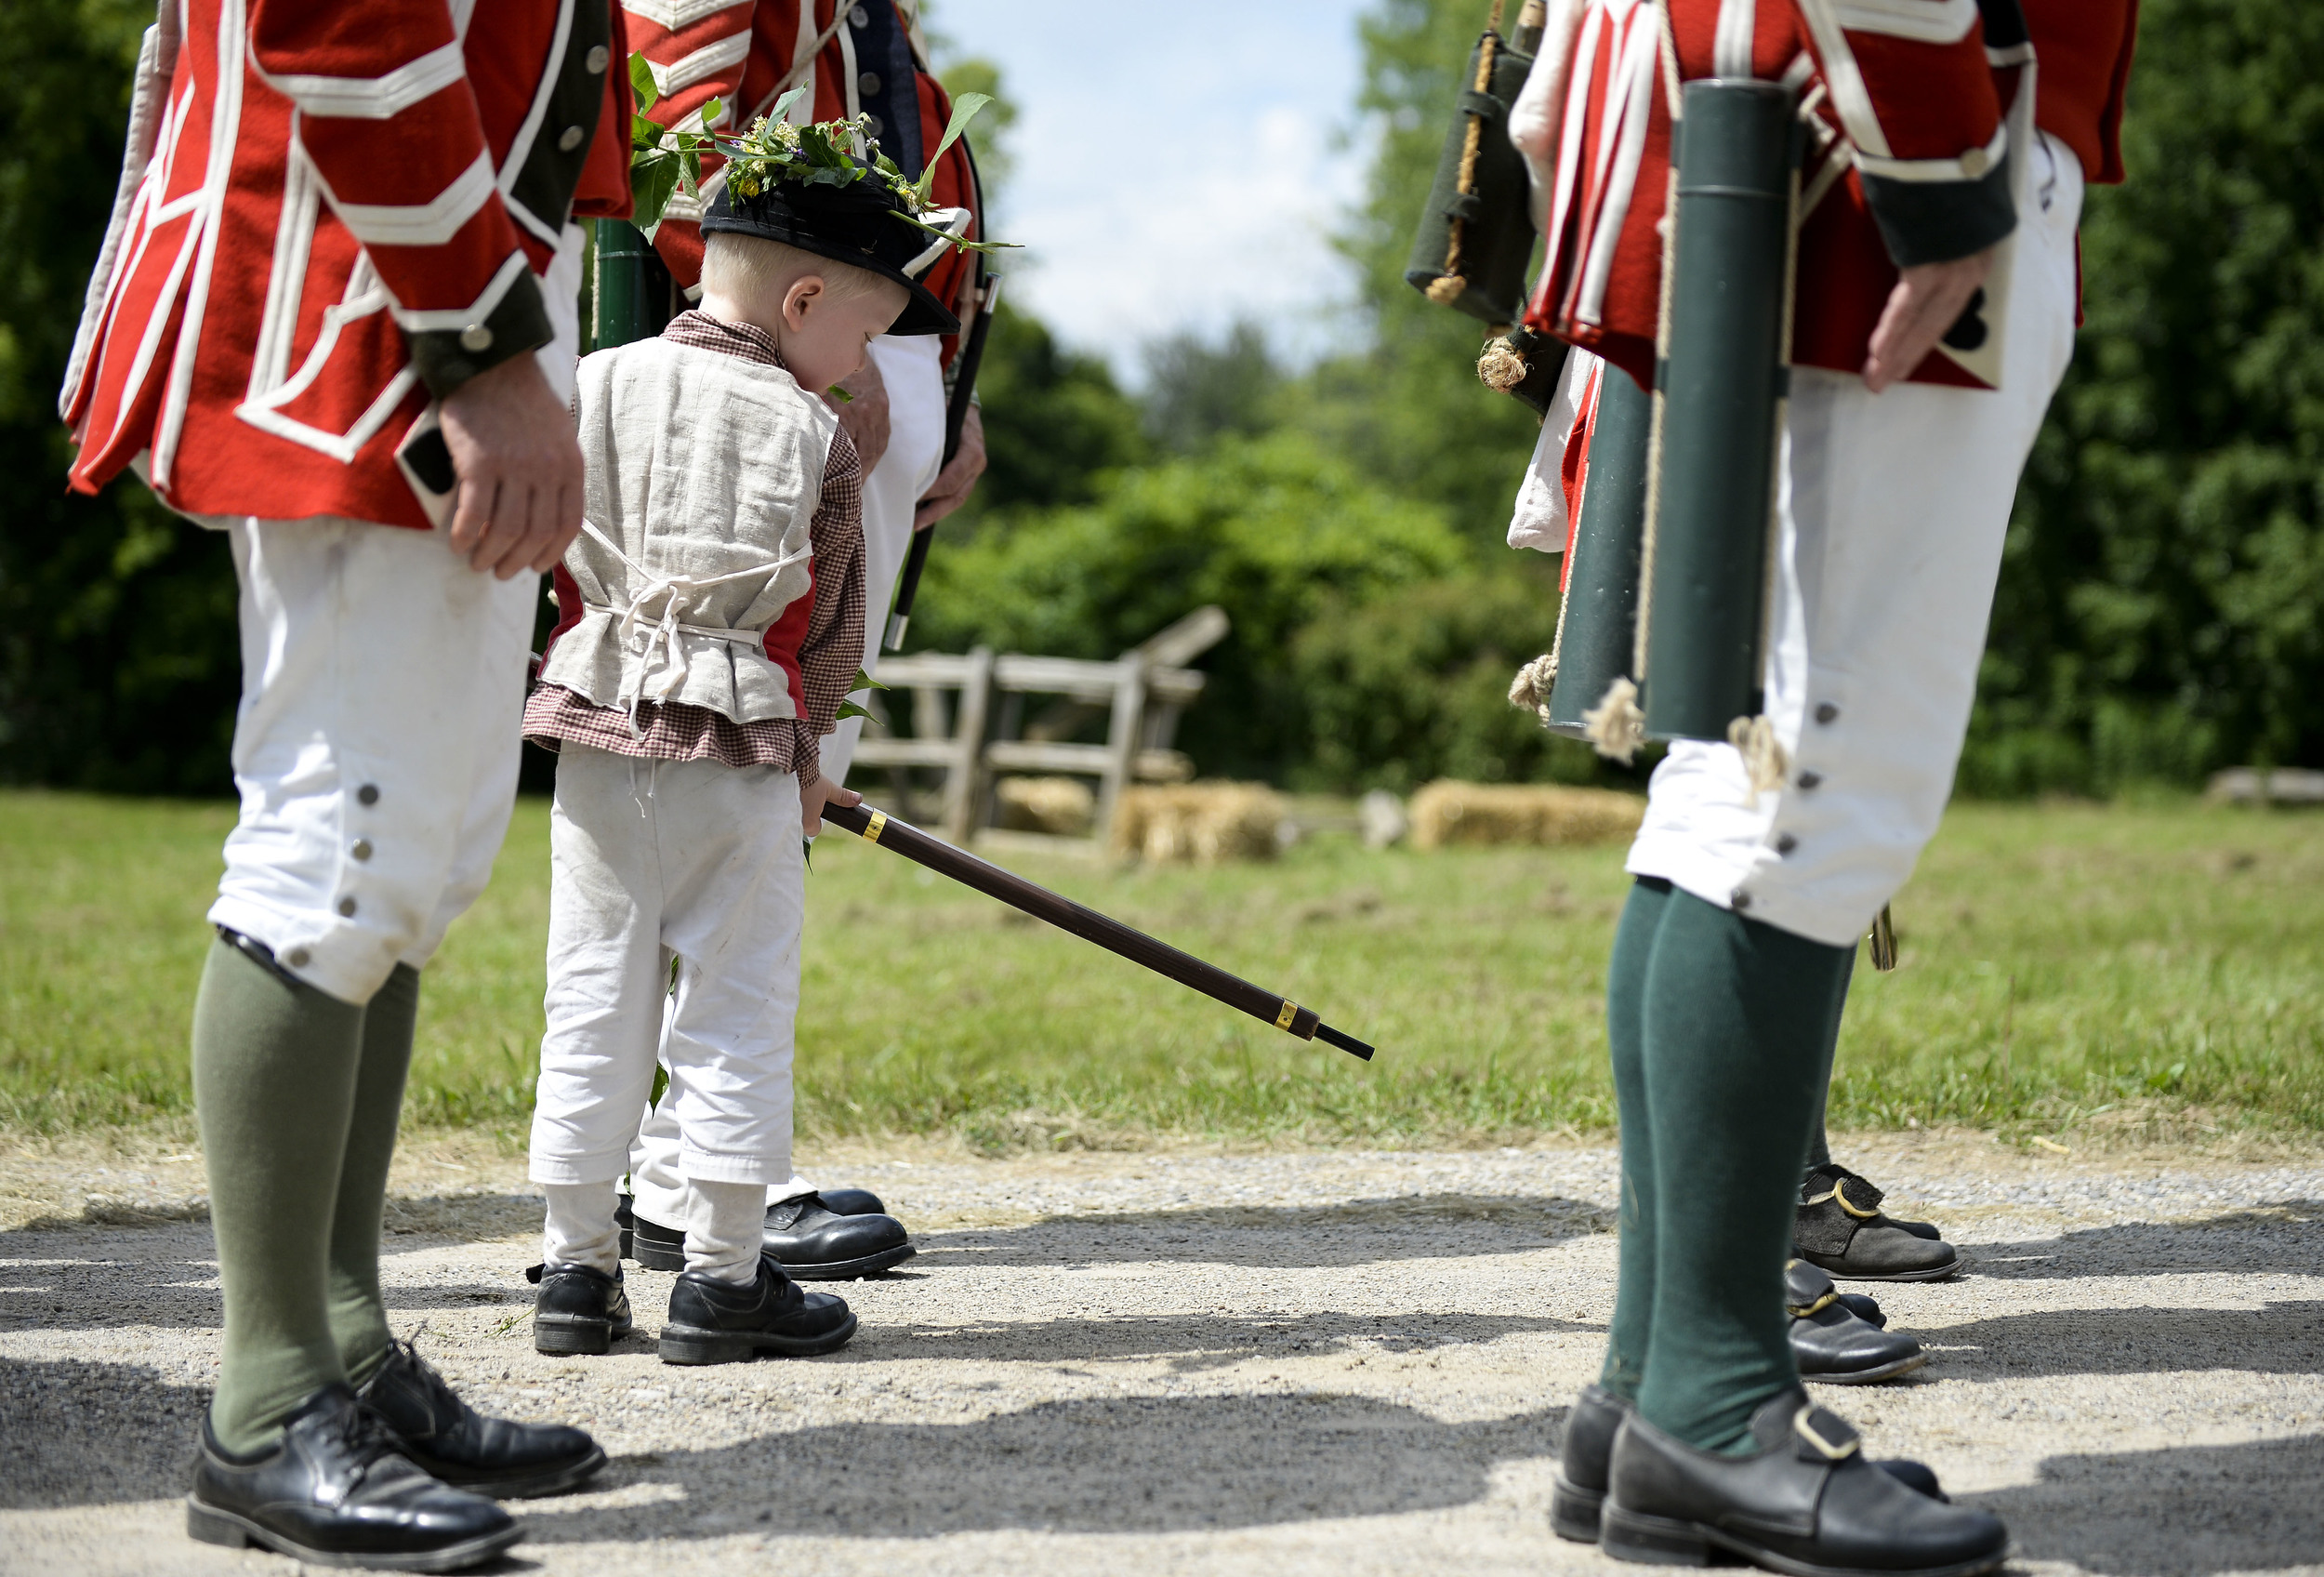 A young boy plays with his gun after a revolutionary war re-enactment at Black Creek Pioneer Village on Sunday afternoon.